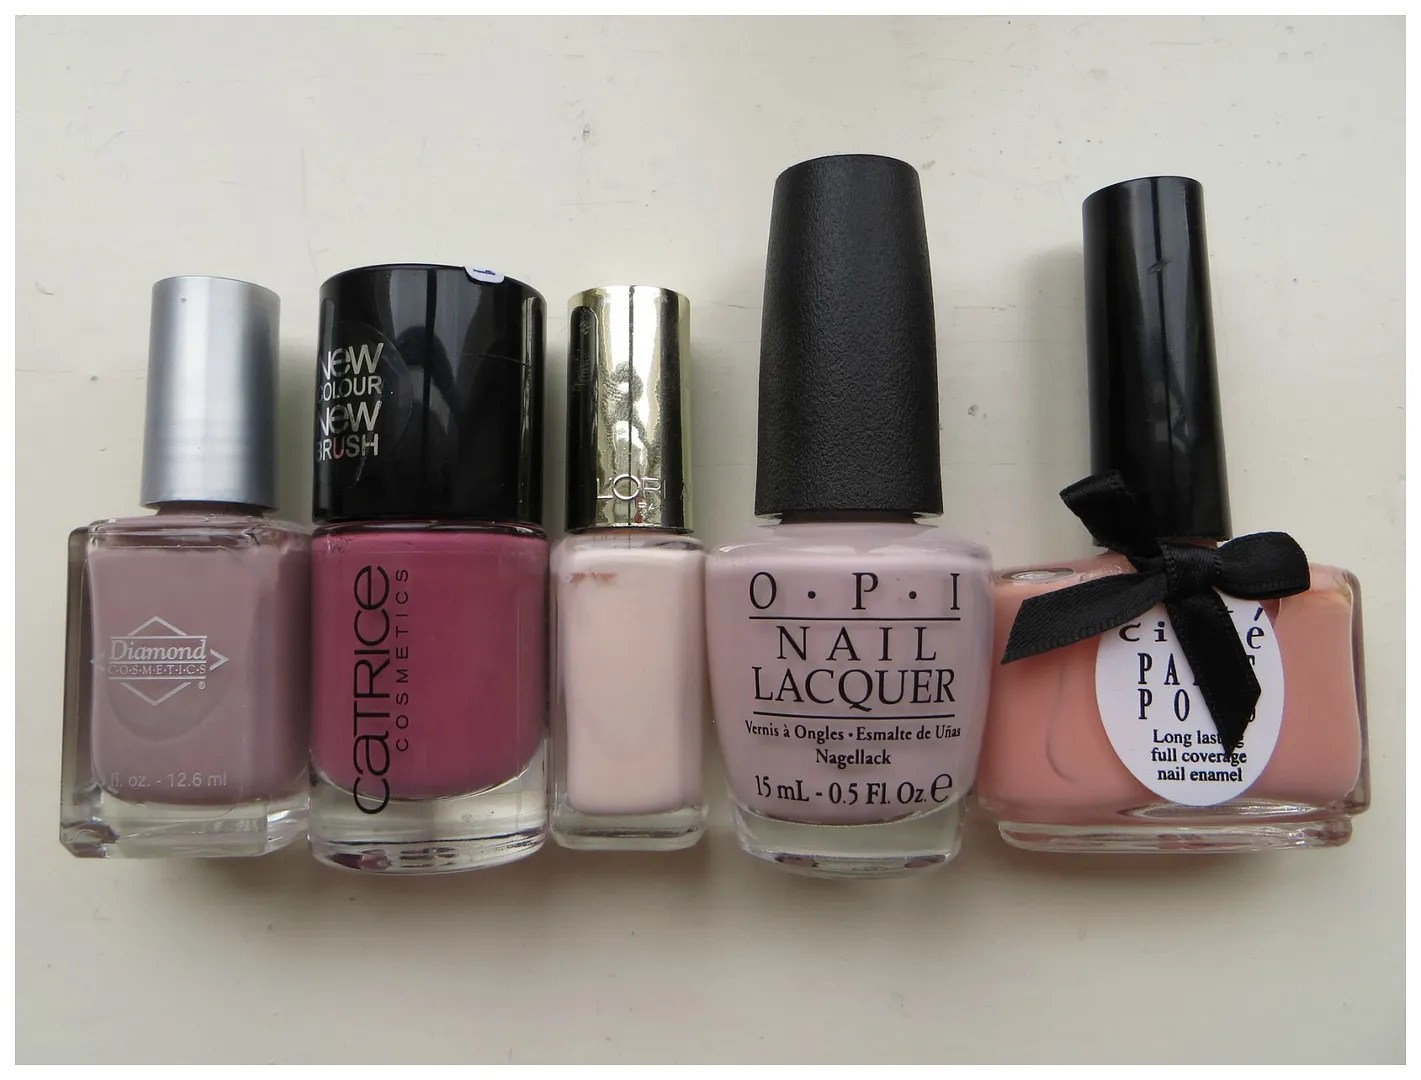 Neutral nail colors – Floating in dreams